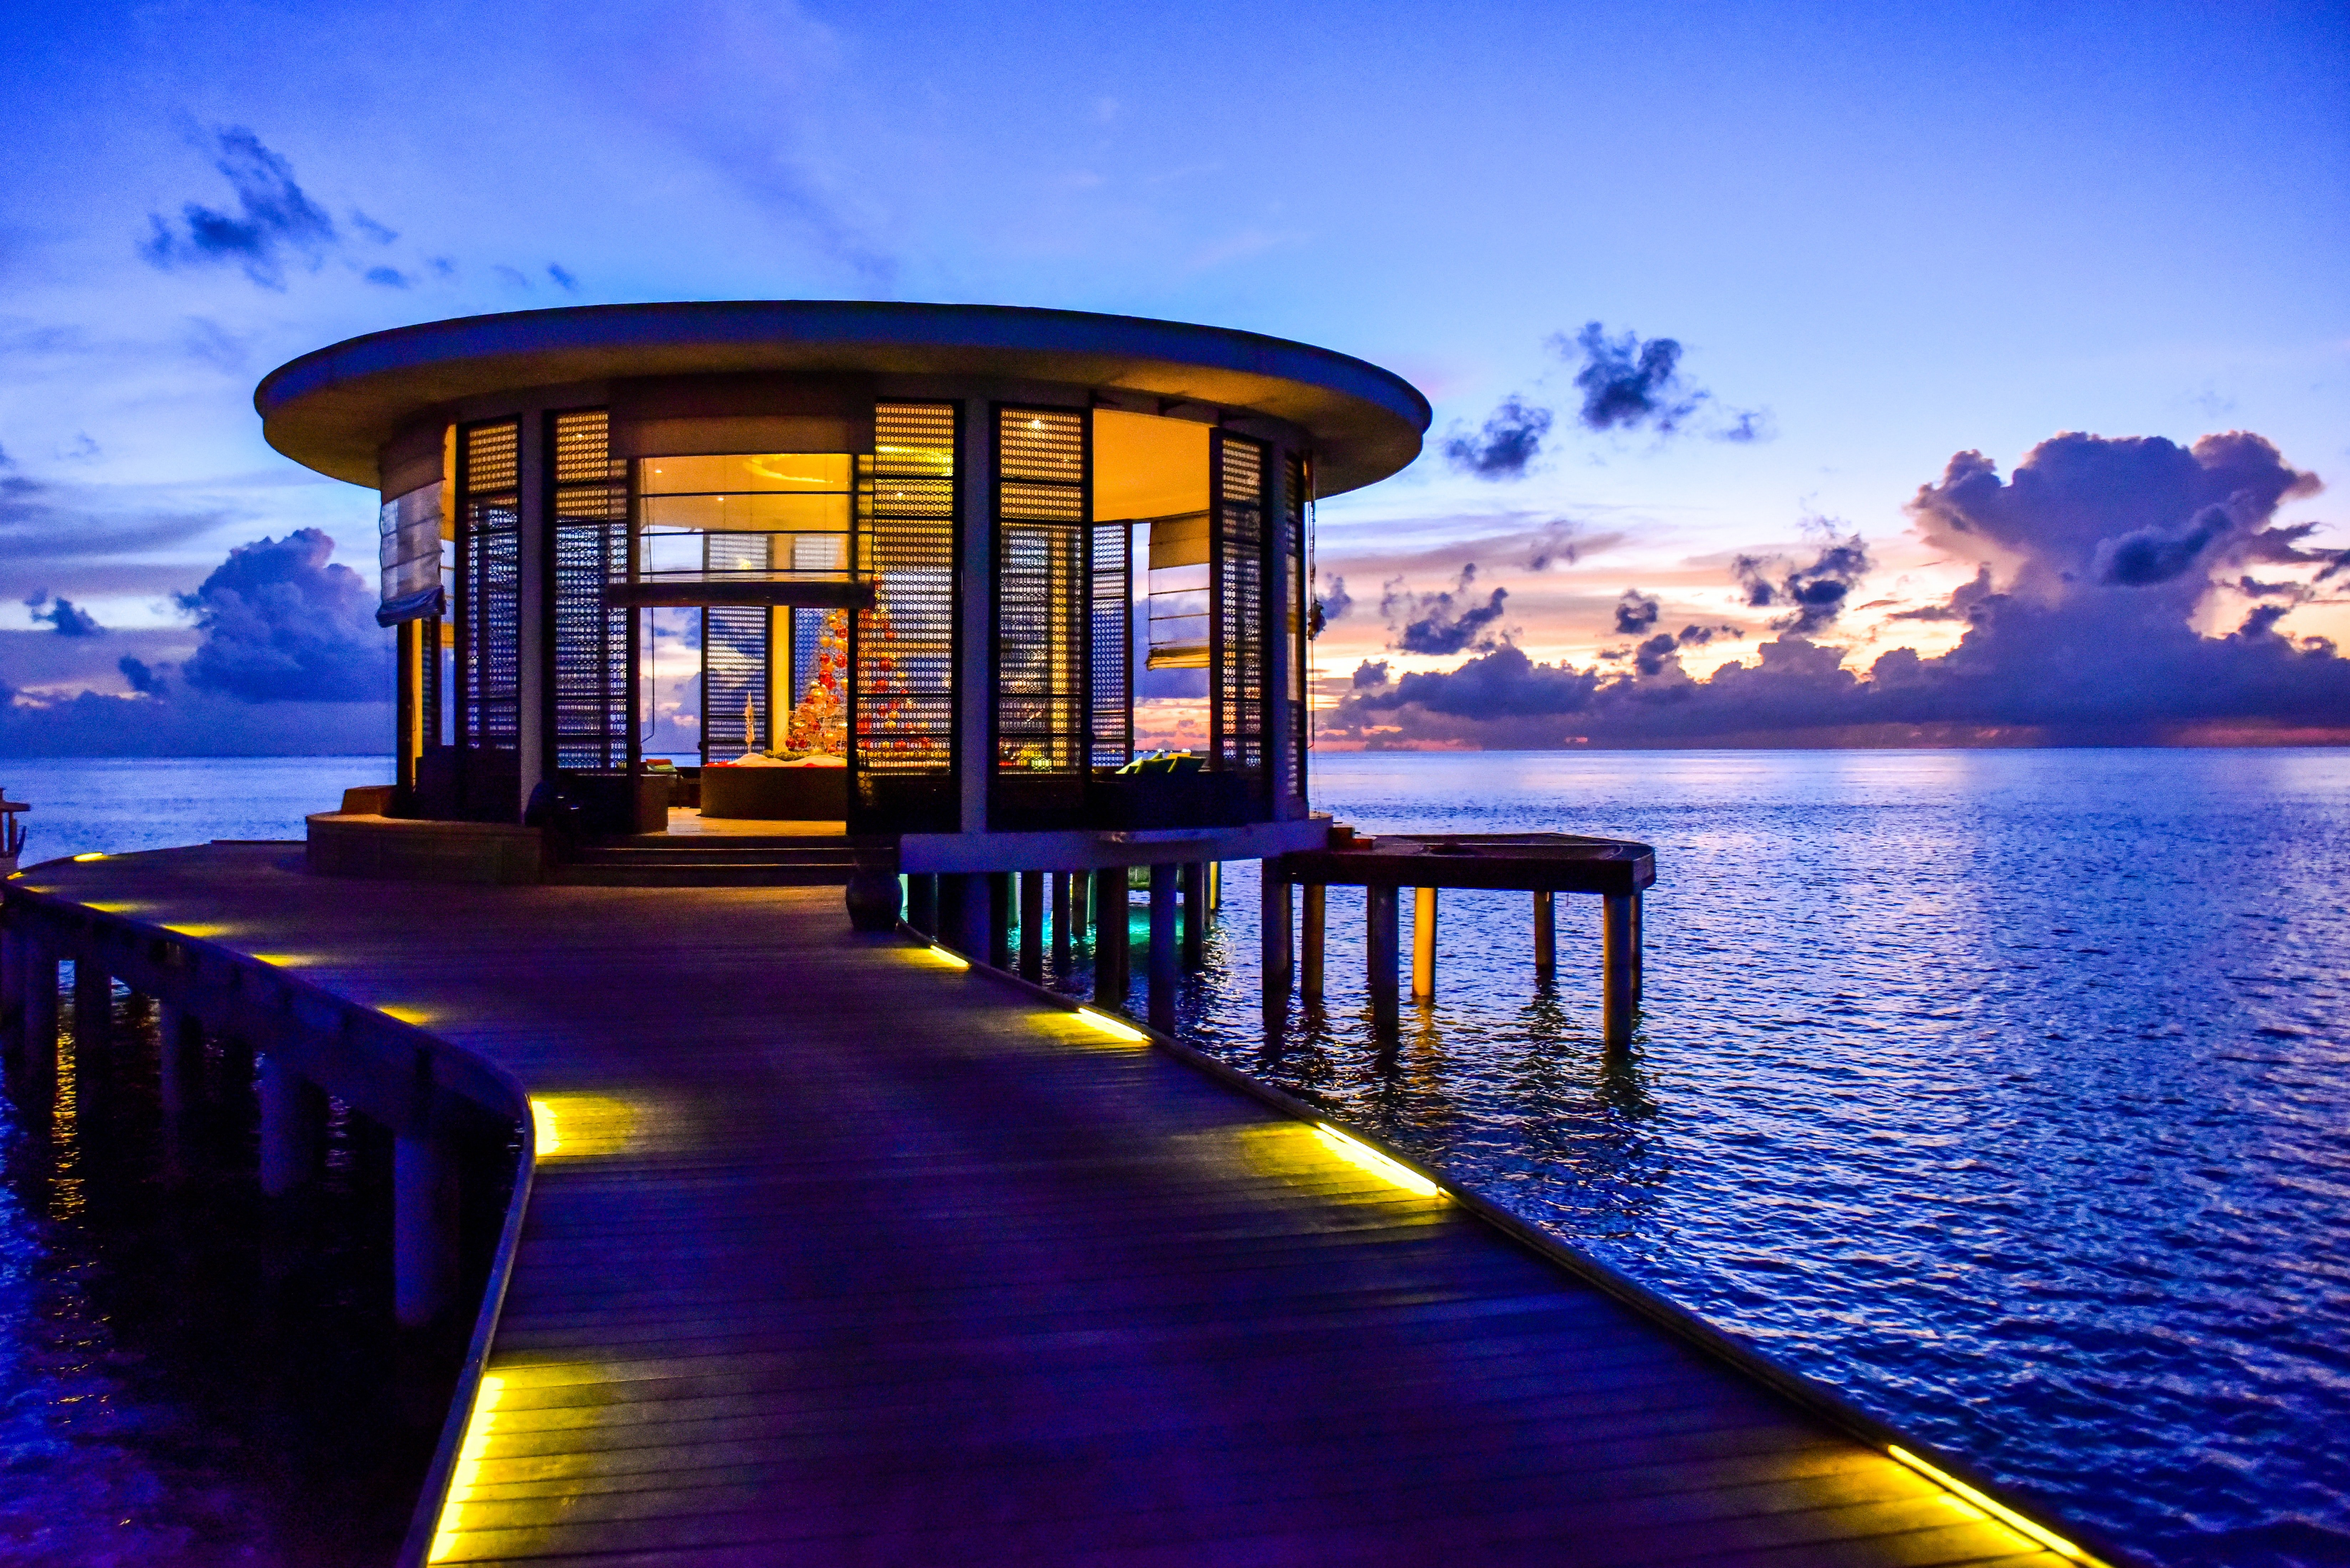 Unique experience design for corporate incentive trip   Global agency, BCD Meetings & Events